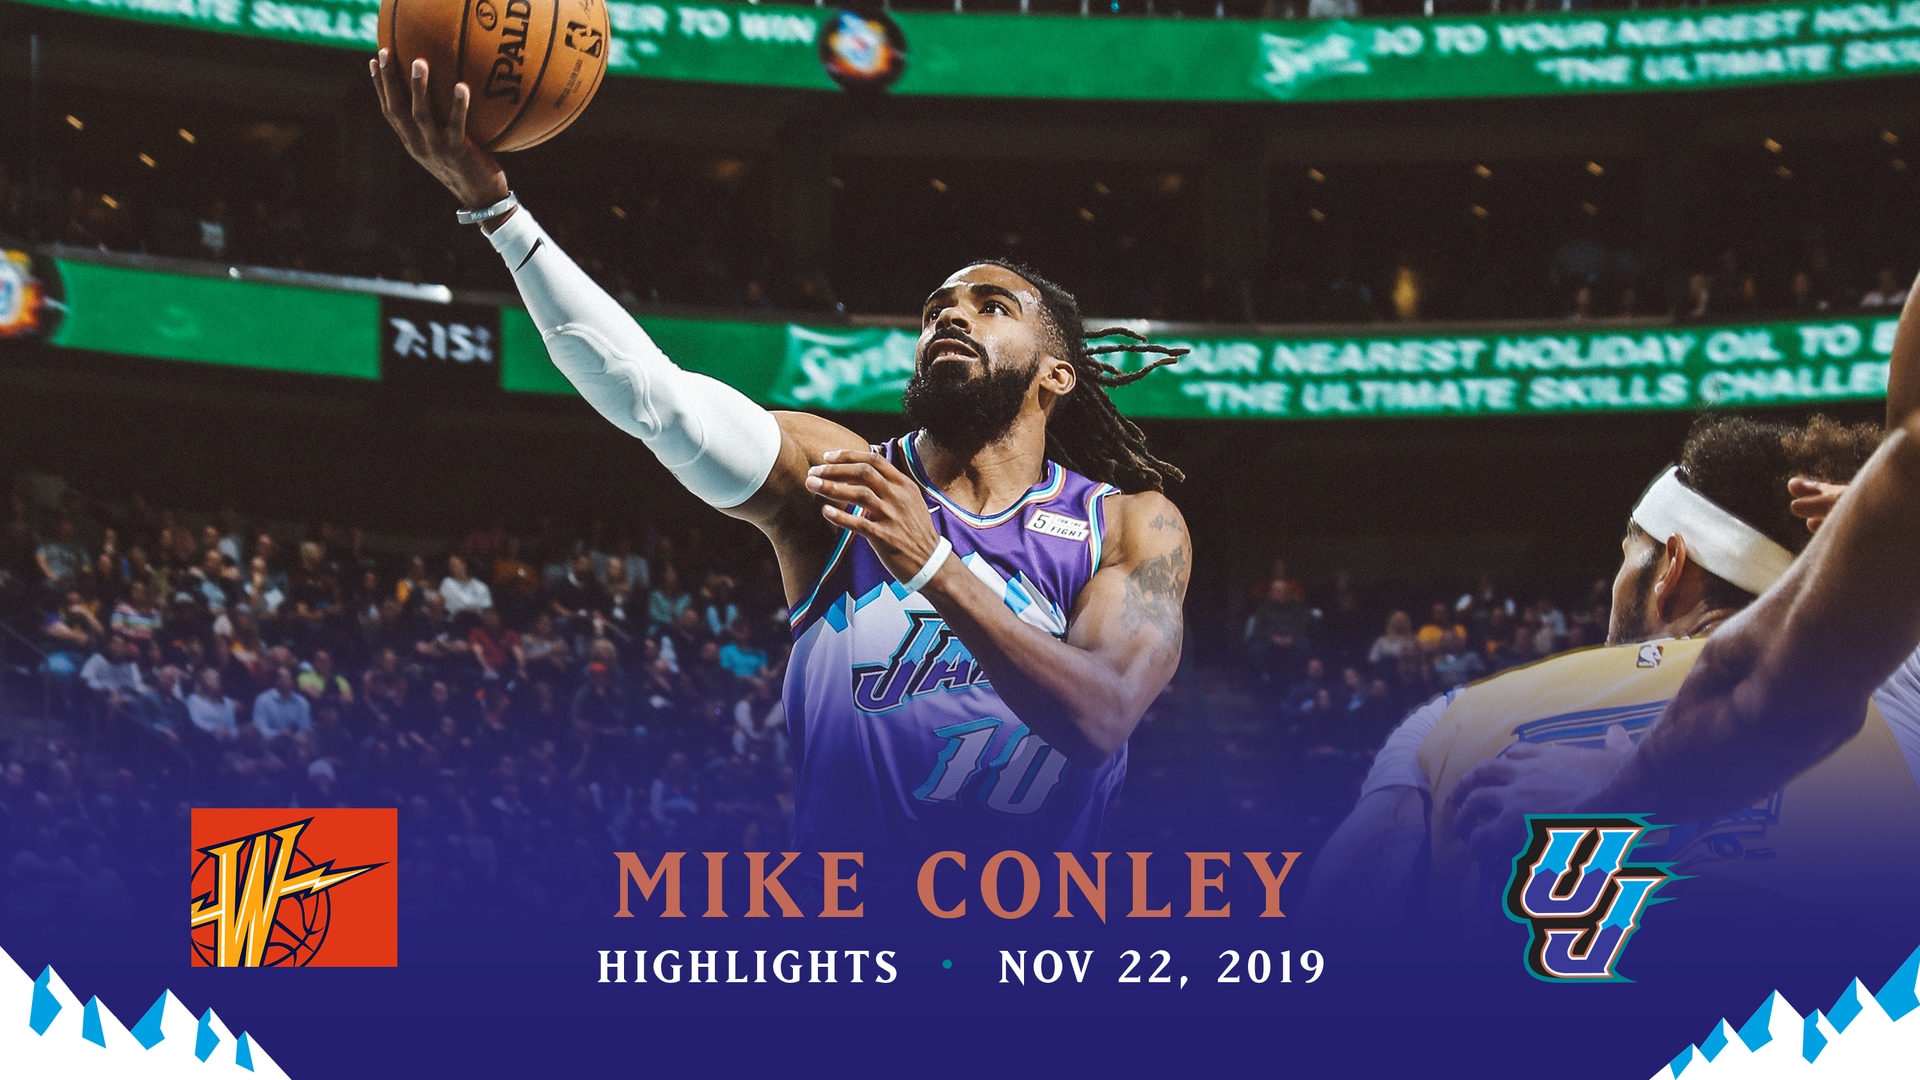 Highlights: Mike Conley—27 points, 4 assists